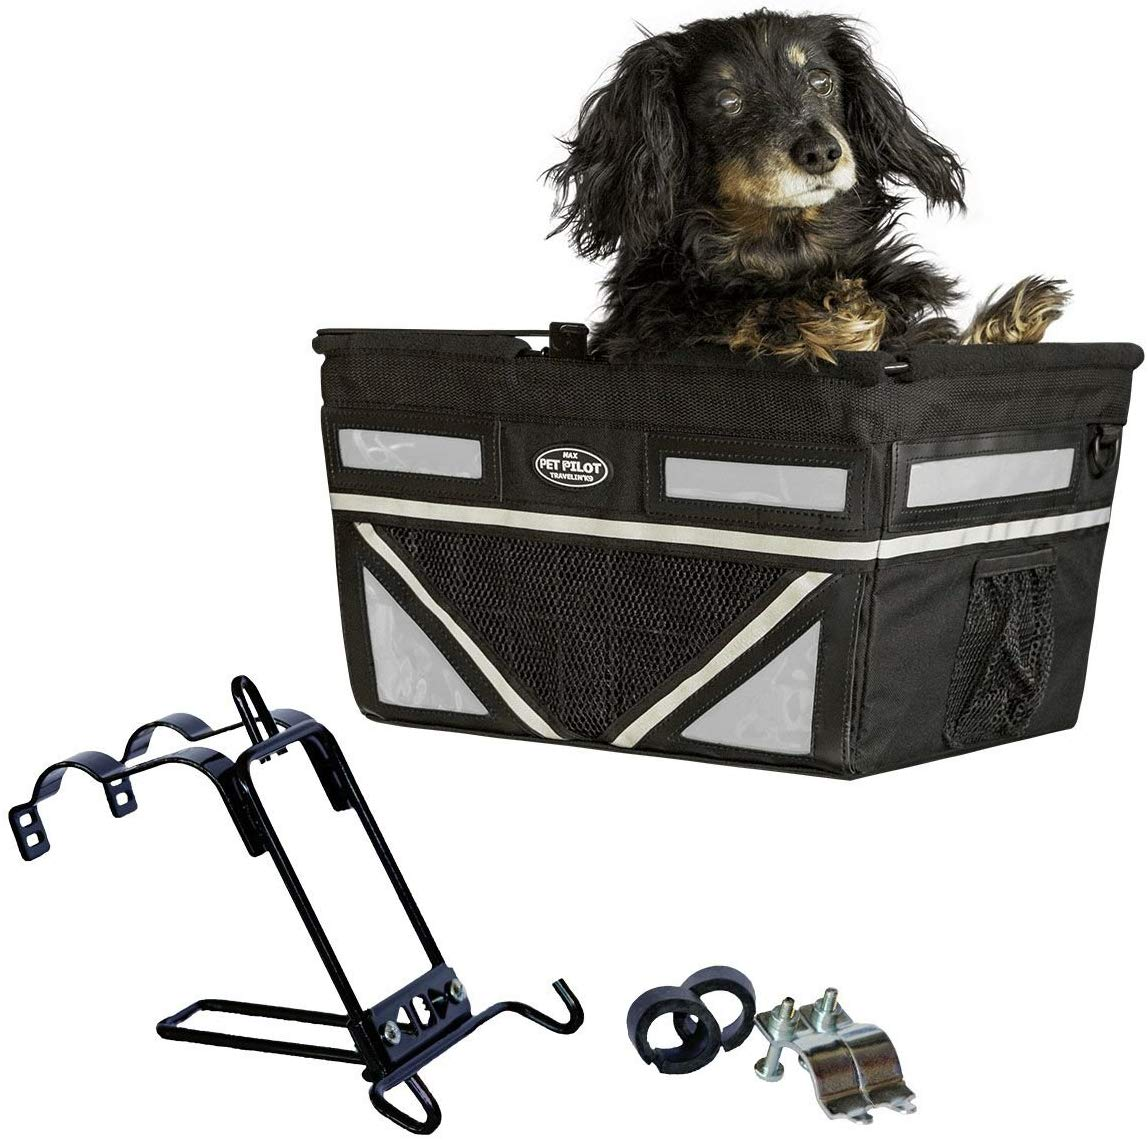 Travelin K9 2019 Pet-Pilot MAX Large Bike Basket for Dogs & Cats, Silver